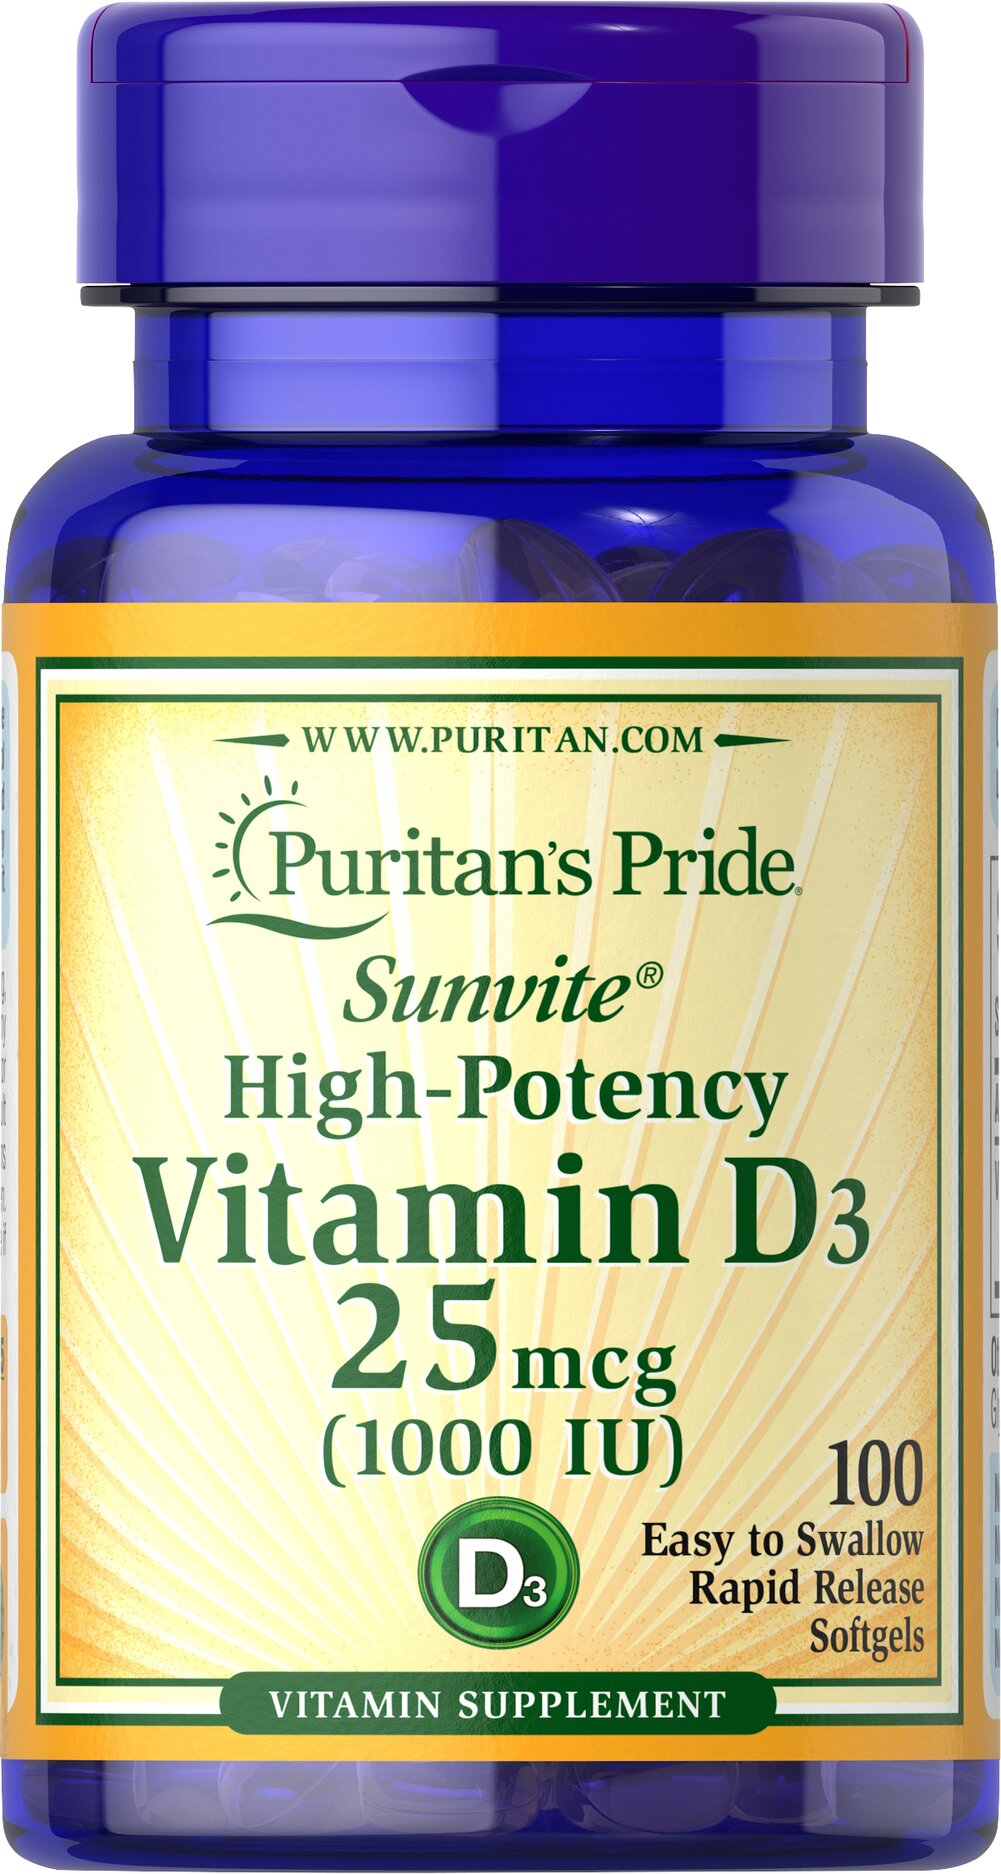 Vitamin D3 25 mcg (1000 IU) Thumbnail Alternate Bottle View